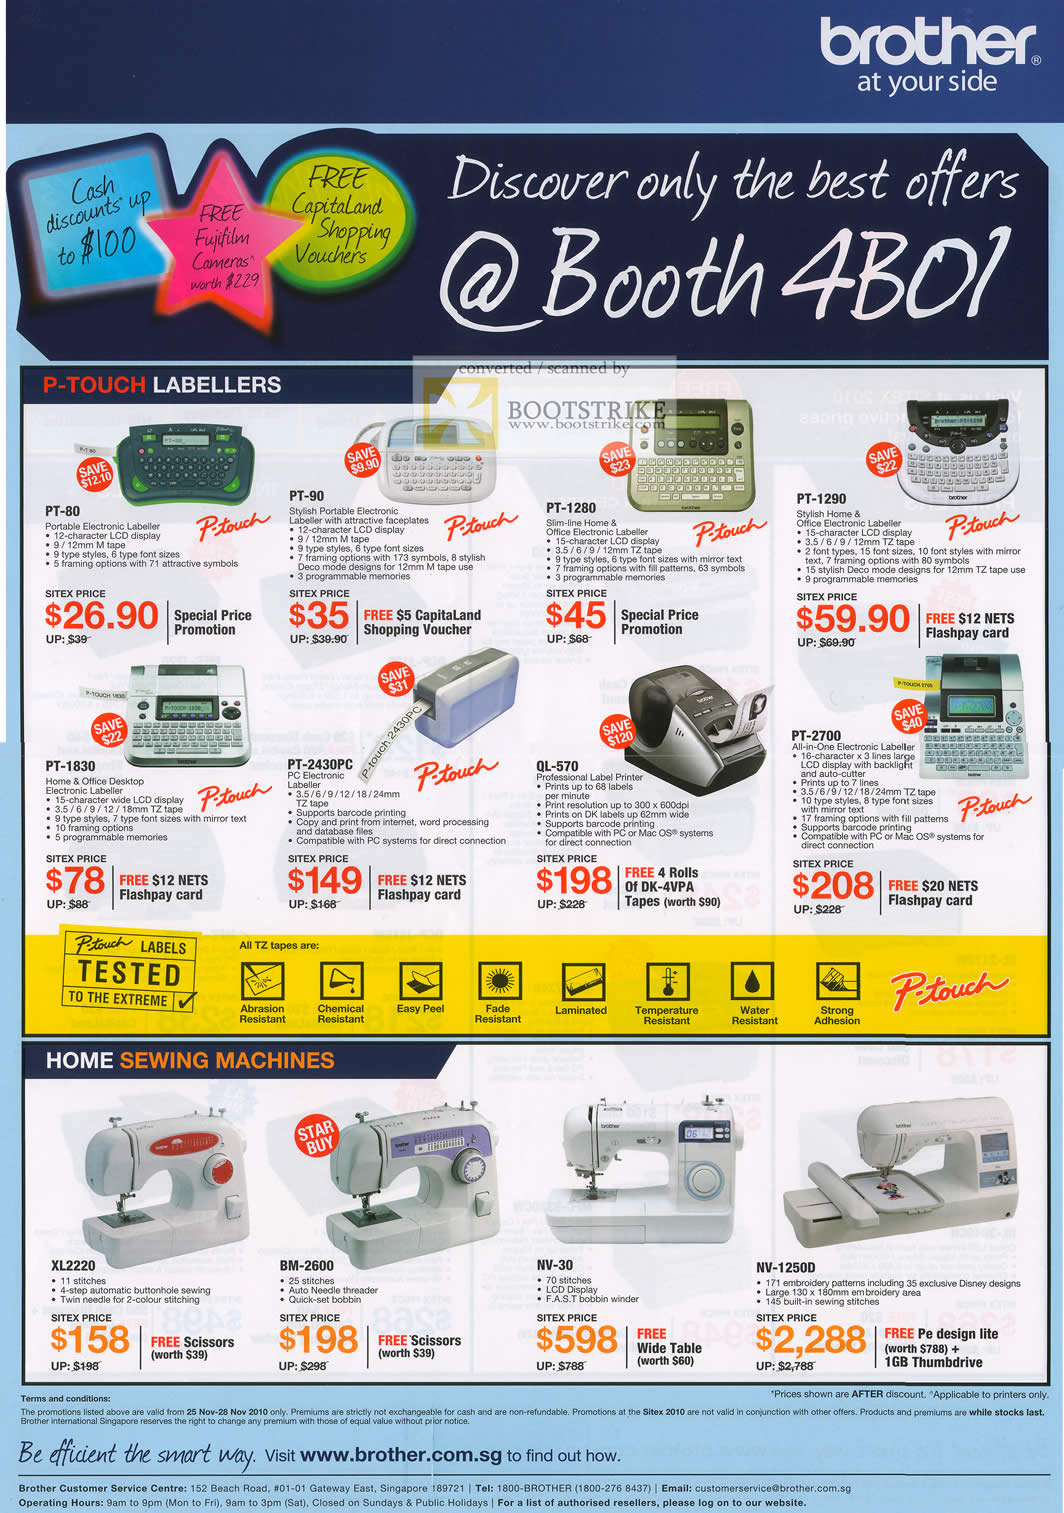 Sitex 2010 price list image brochure of Brother P Touch Labellers Home Sewing Machines